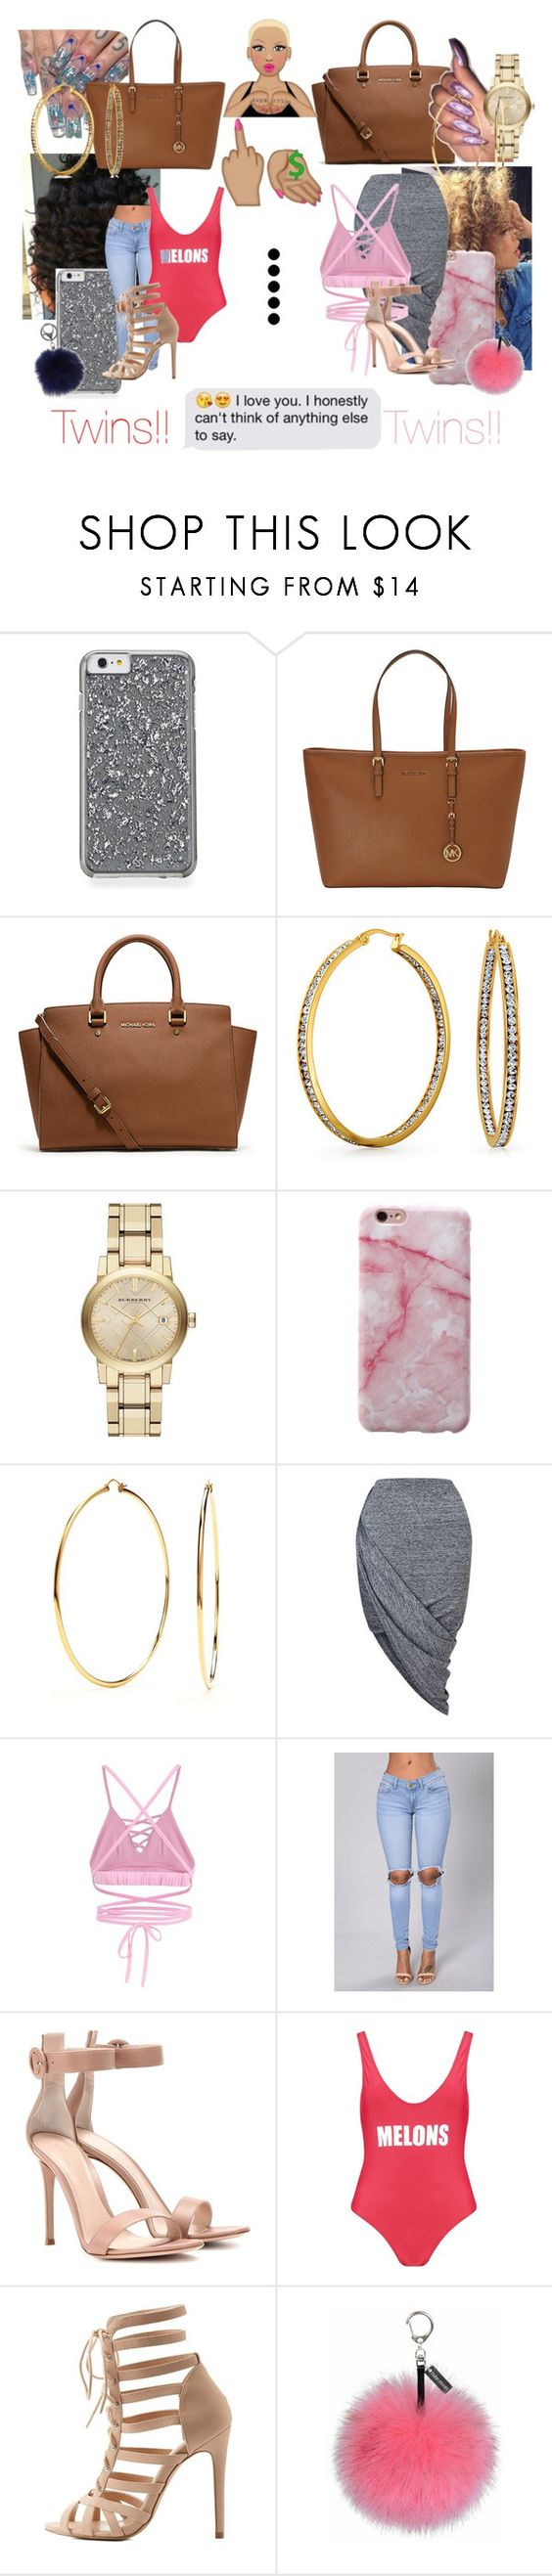 """❤❤"" by mukikiswaggg ❤ liked on Polyvore featuring MICHAEL Michael Kors, Michael Kors, Bling Jewelry, Burberry, Nadri, Miss Selfridge, Gianvito Rossi, Boohoo, Charlotte Russe and Adrienne Landau"